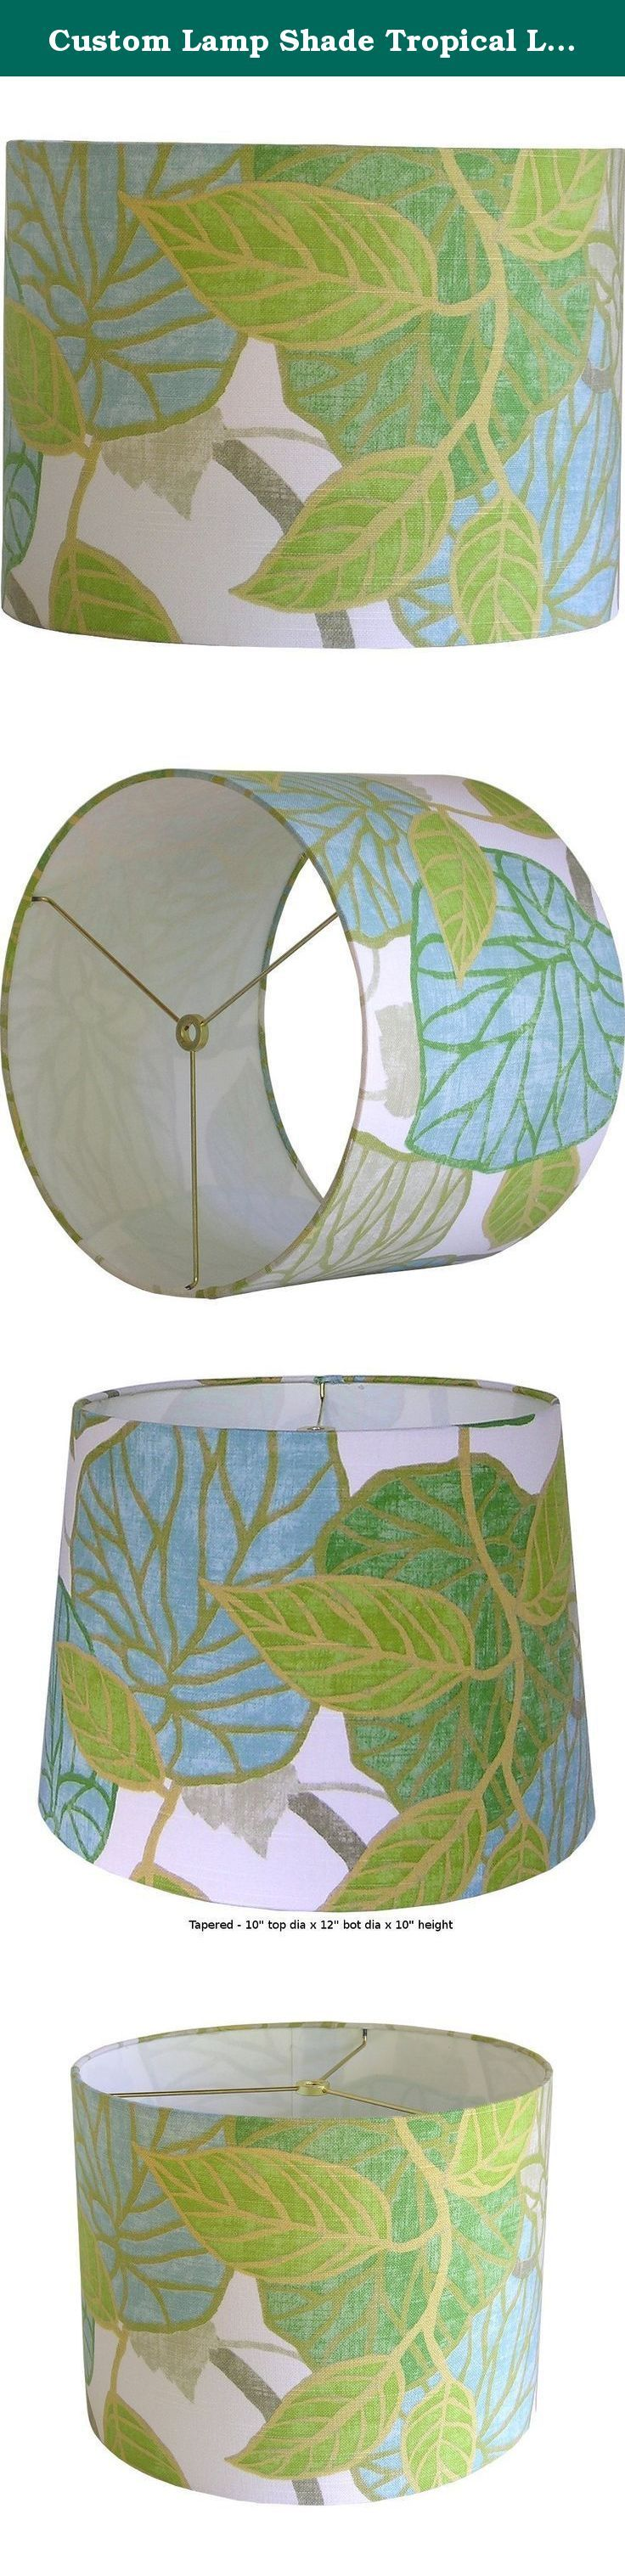 "Custom Lamp Shade Tropical Lampshade Tropic Scene Lampshades Capri Lamp Shade Table Lampshades Bedroom Lamp Shades Made to Order 9"" to 16"" Diameter. Custom lamp shade, constructed by hand from raw materials and covered with Robert Allen @ Home's Tropic Scene in Capri. SPECS: - FABRIC: Robert Allen's Tropic Scene in Capri, a cotton fabric with a leafy, tropical design. Color palette includes shades of chartreuse, green, aqua, tan and brown on a white background. - FITTING: Standard..."